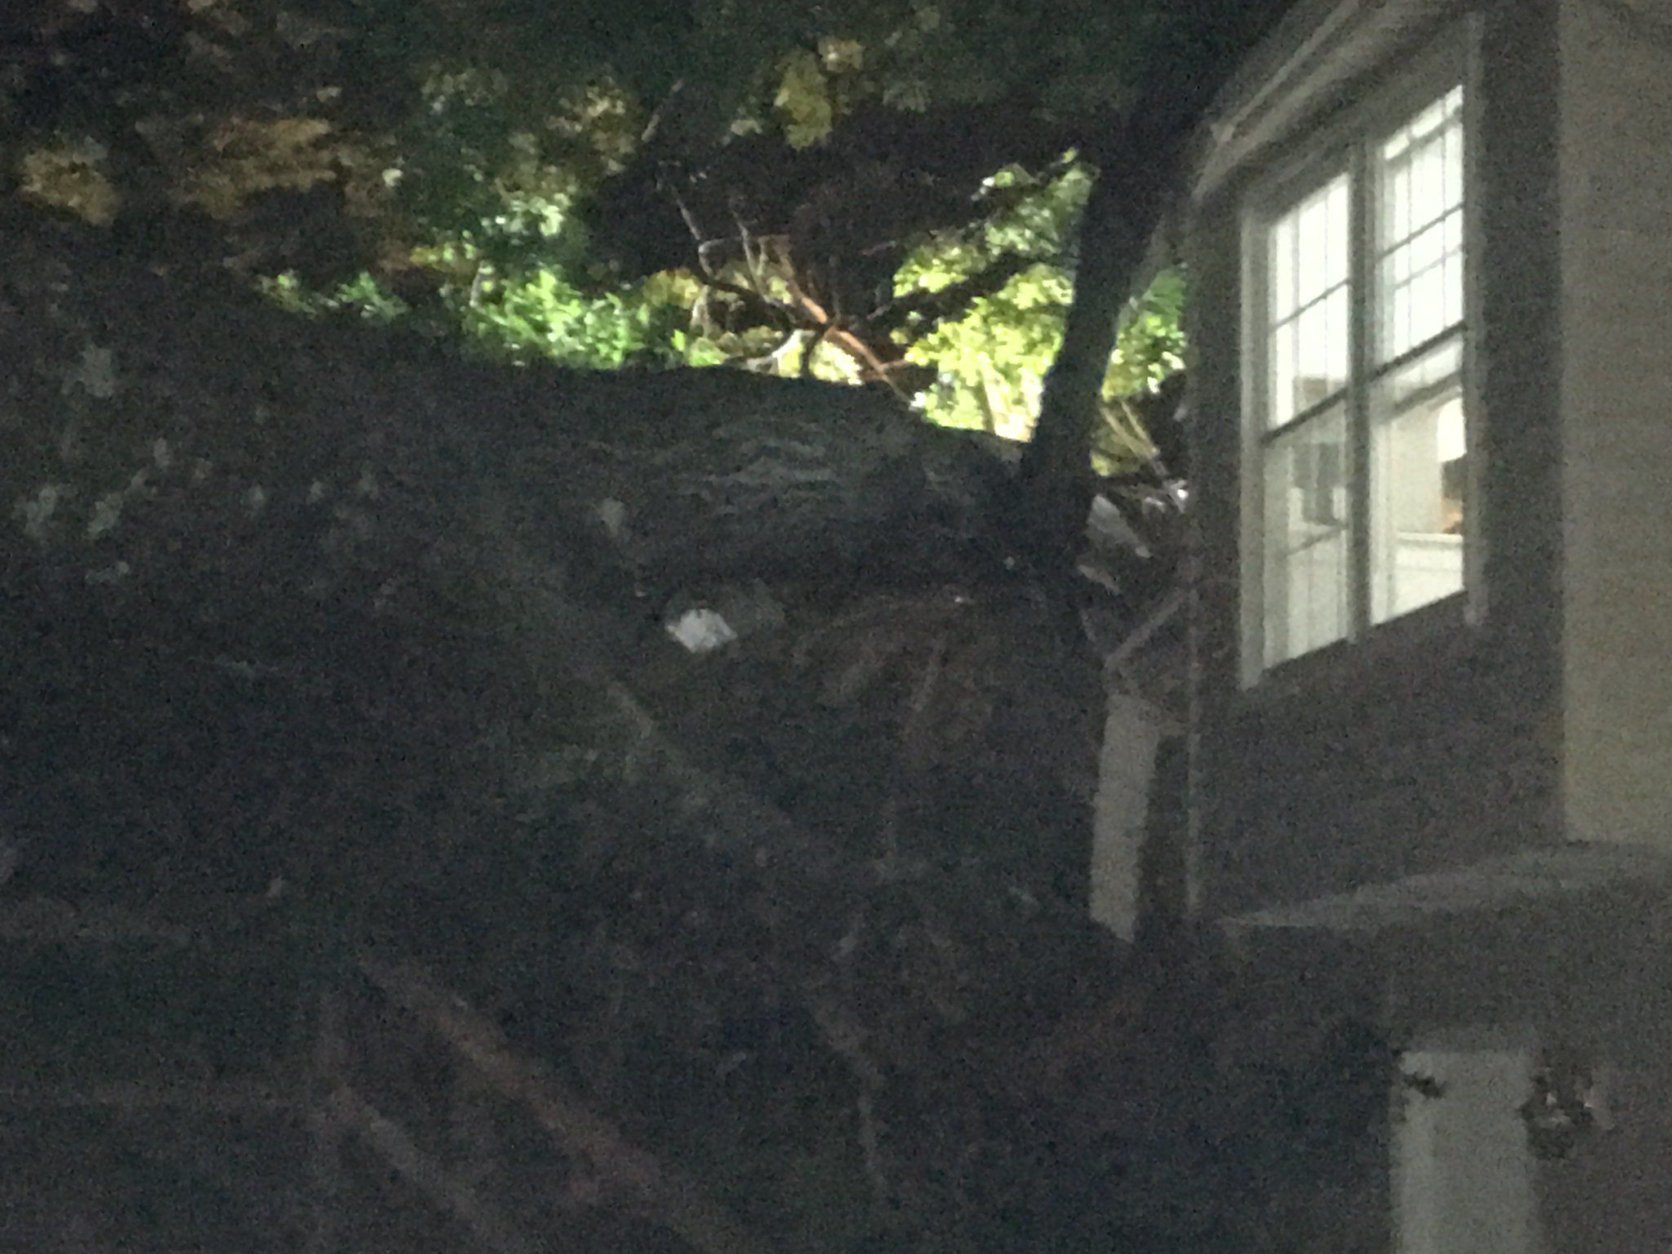 The Fairfax County Fire and Rescue Department arrived at the home in the 5900 block of Burnside Landing Drive around 8:45 p.m. and found a large tree had fallen through.(Courtesy Fairfax County Fire and Rescue Department)